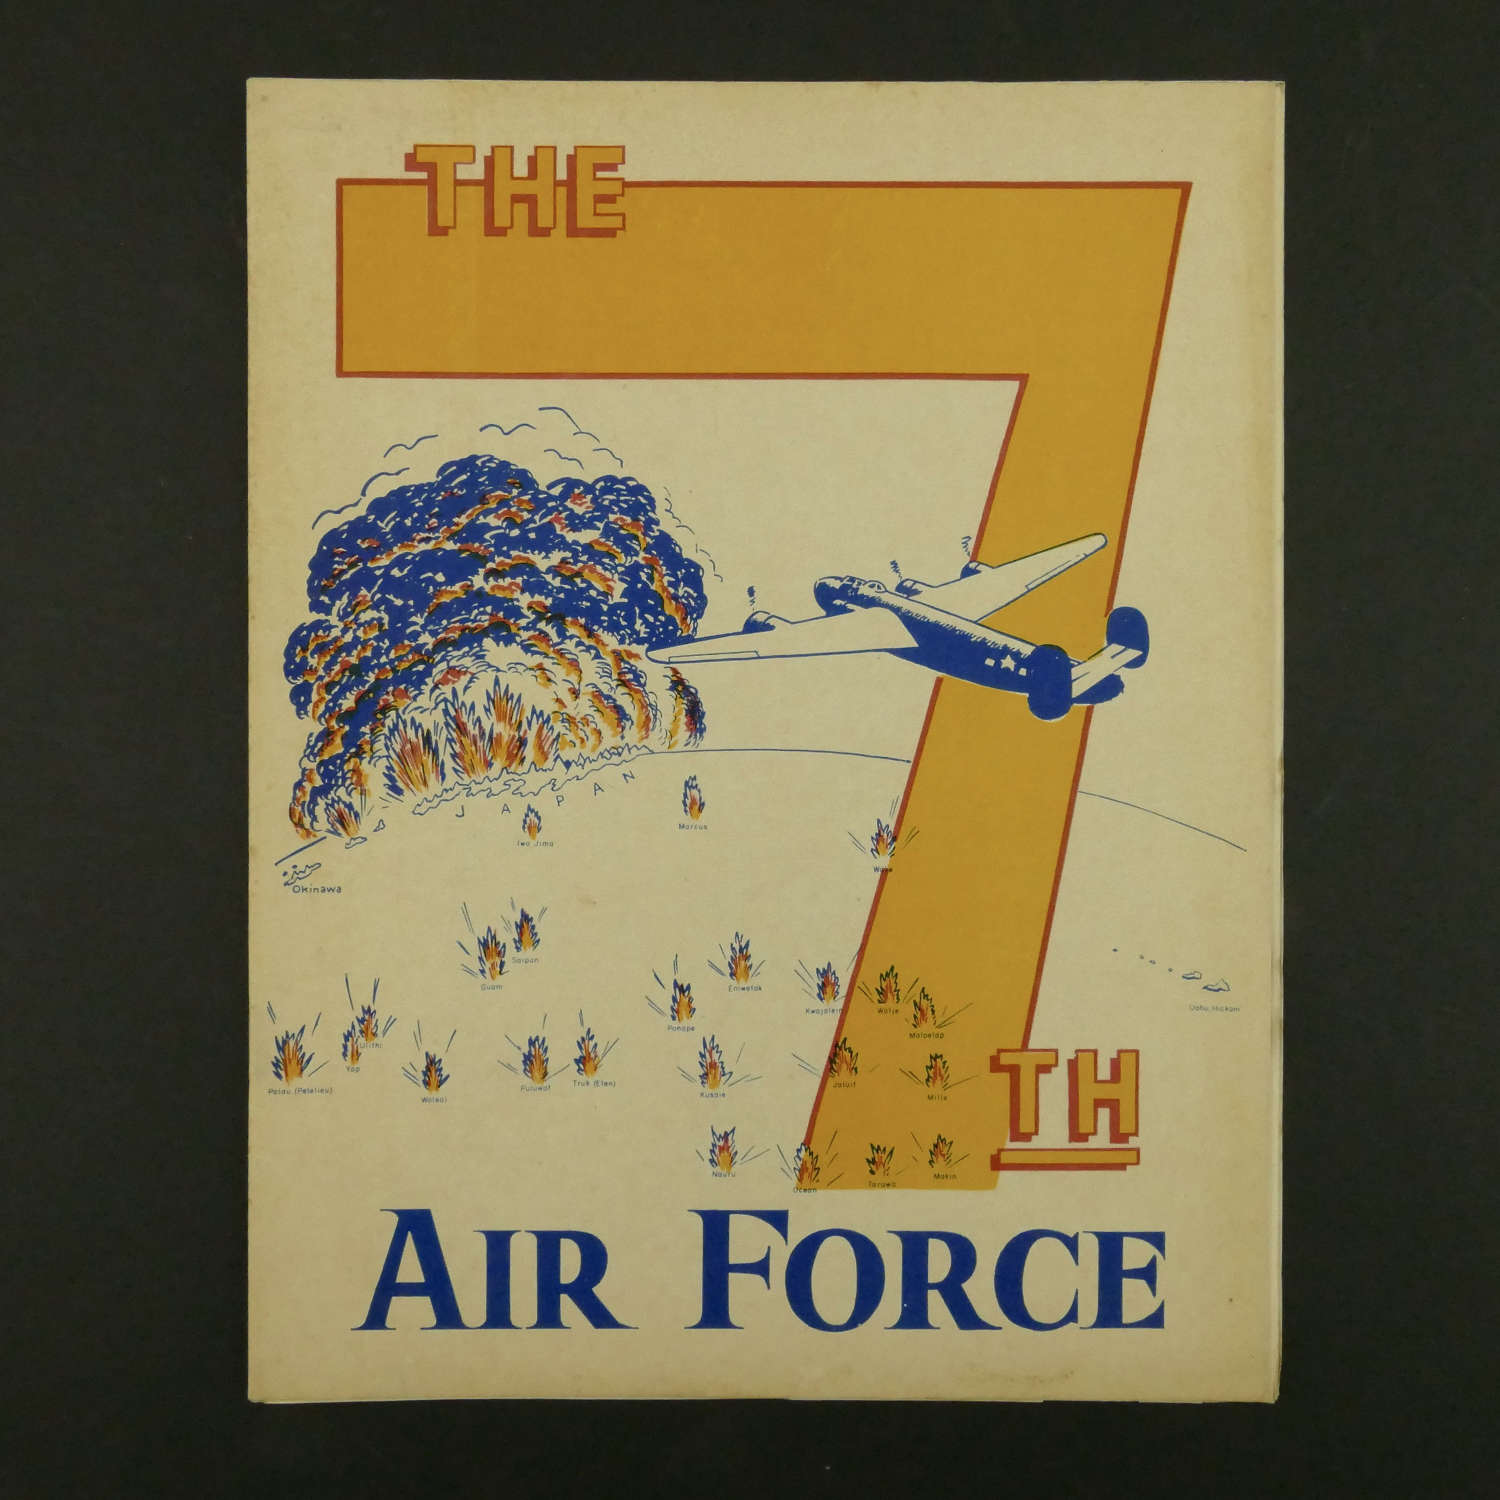 USAAF - The 7th Air Force